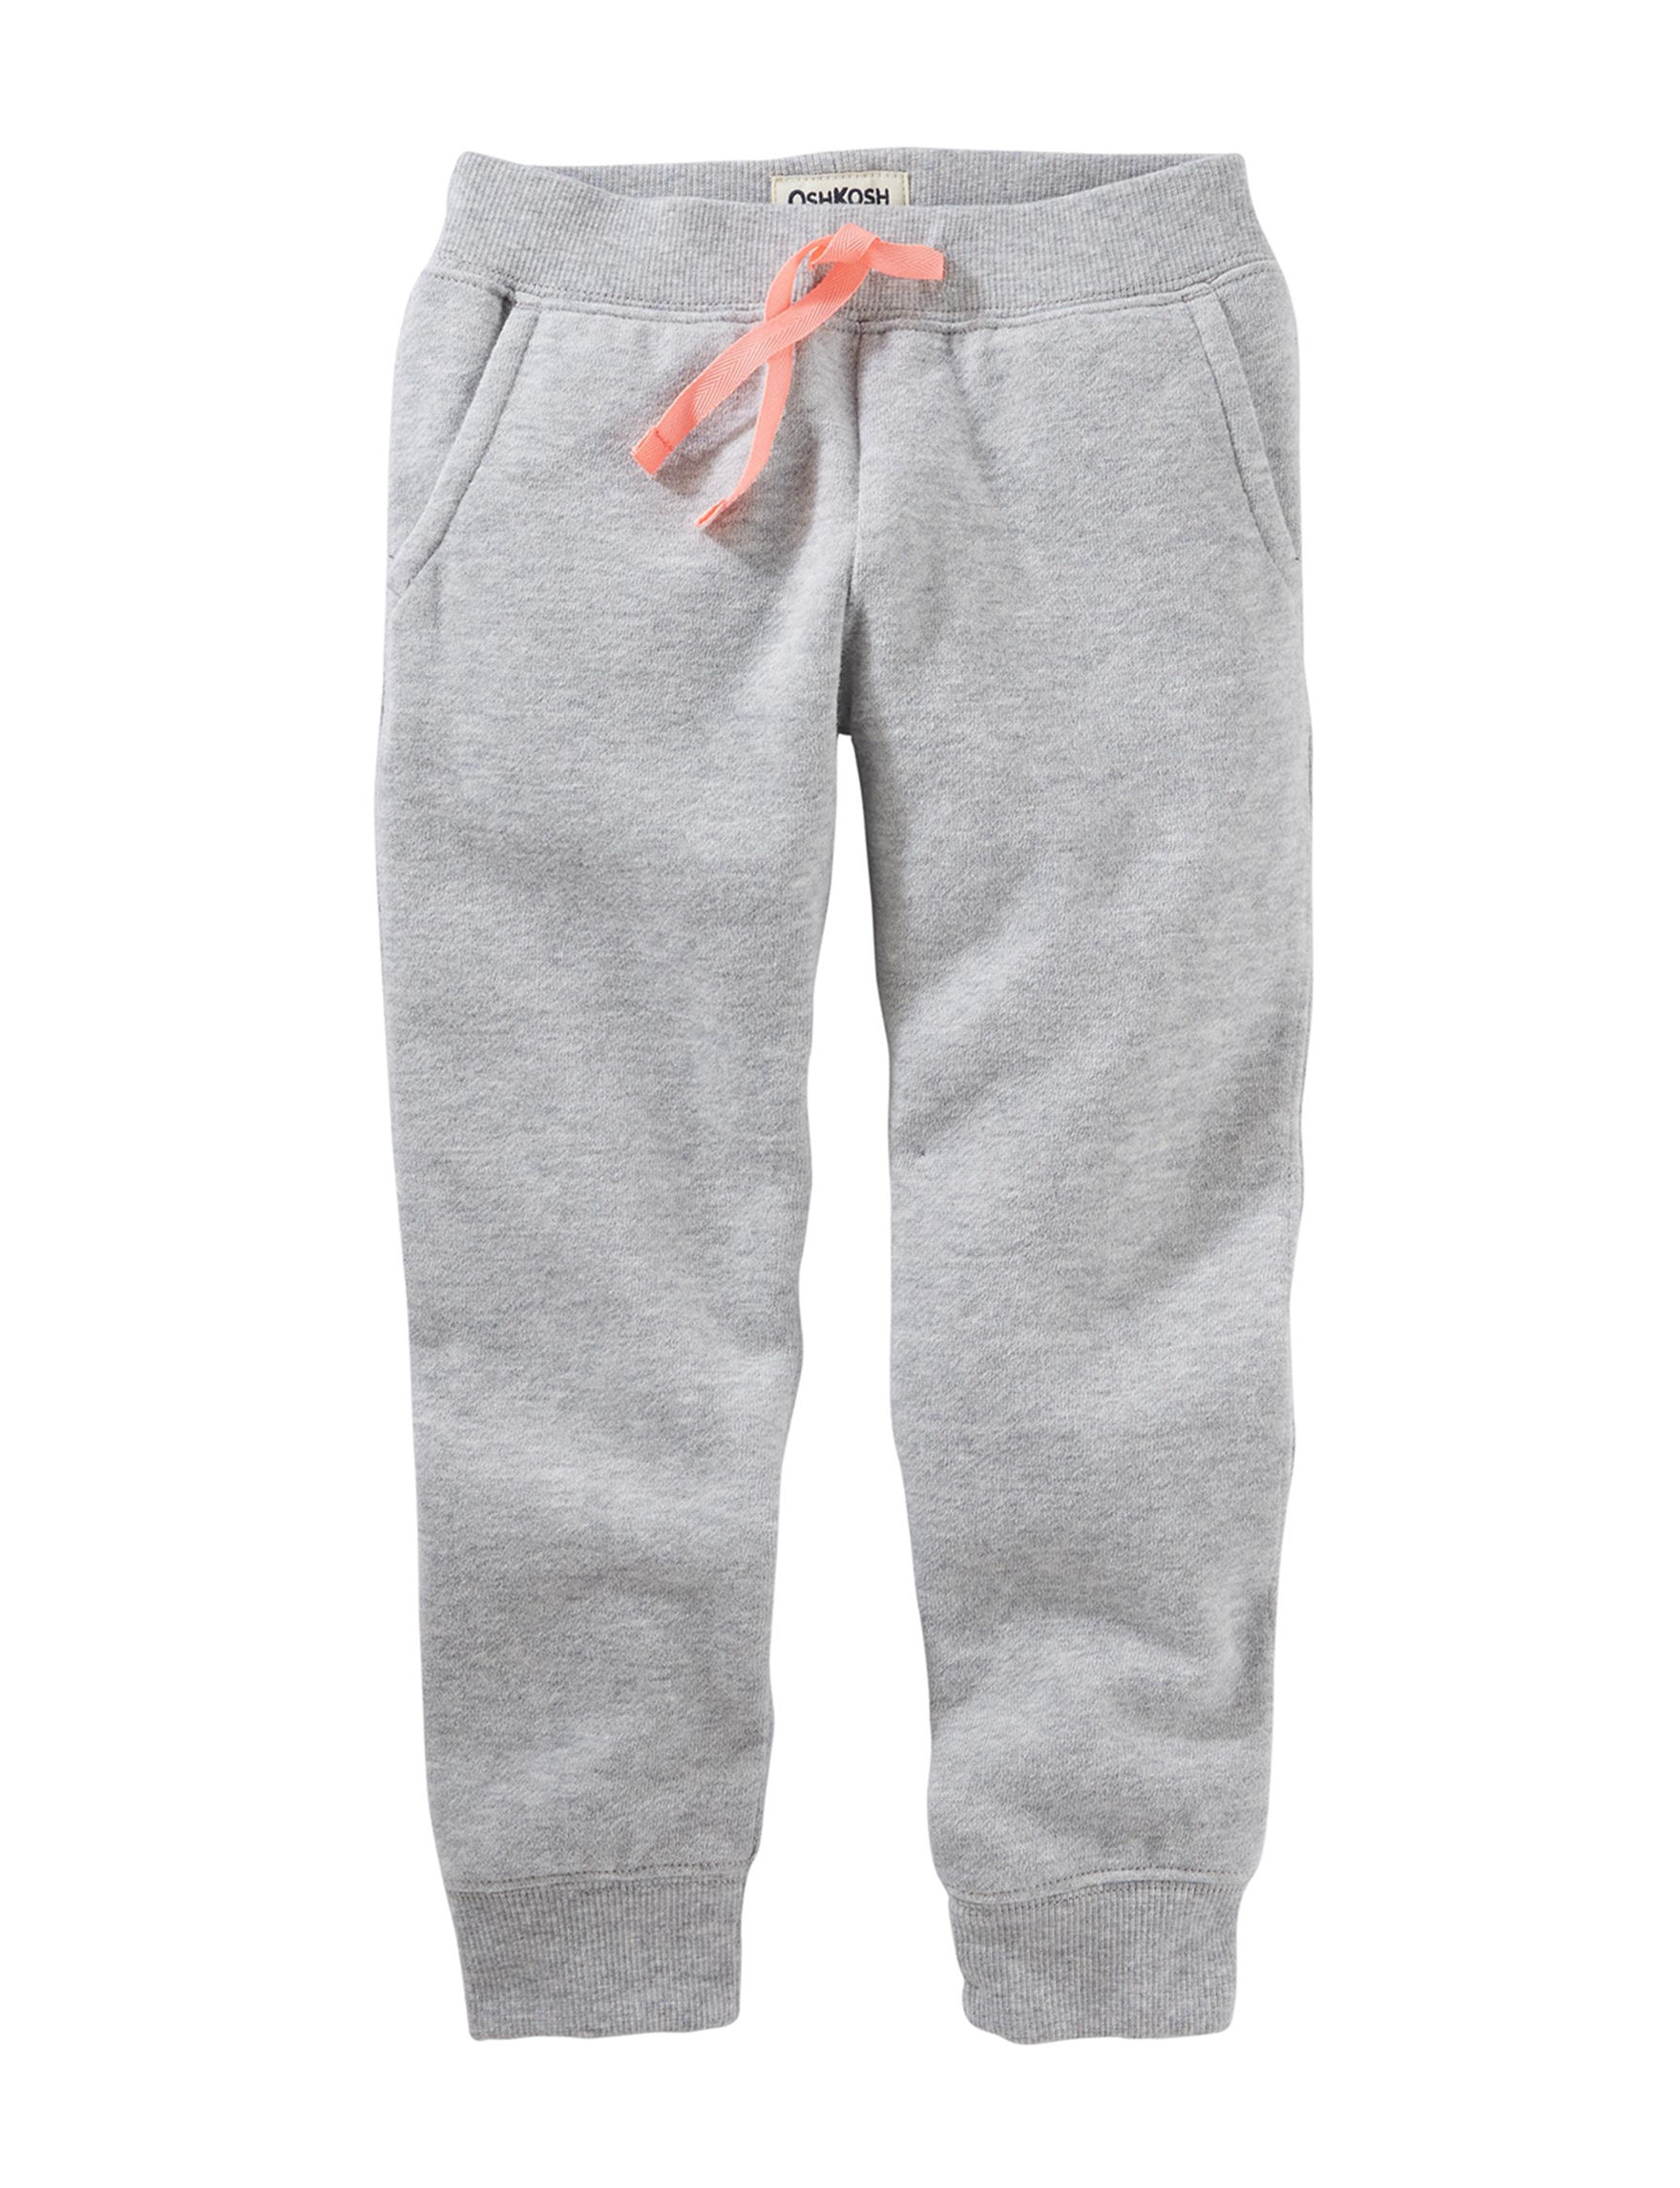 Oshkosh B'Gosh Heather Grey Soft Pants